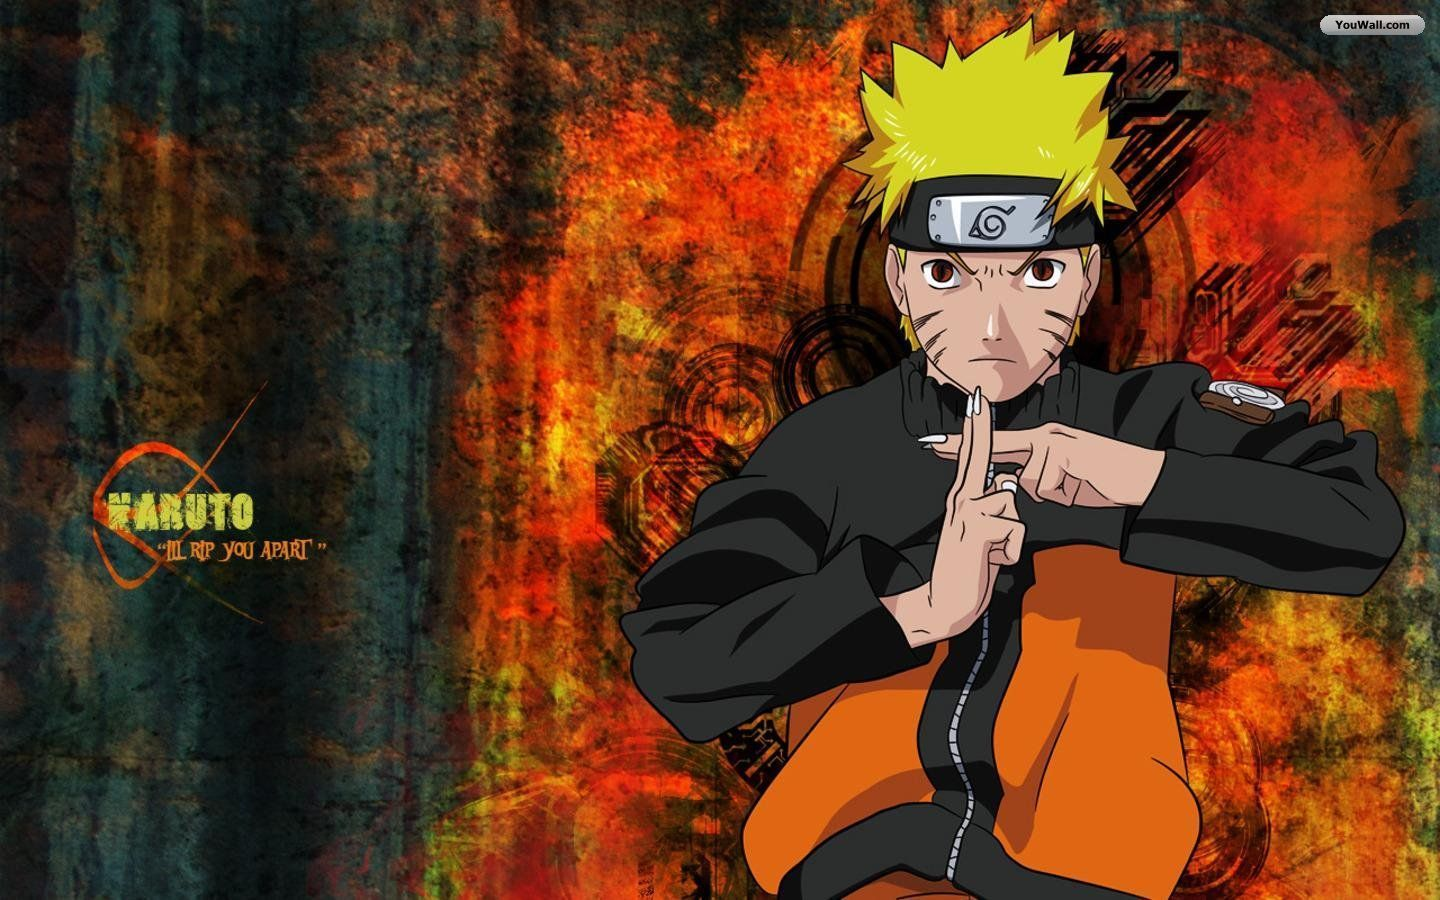 Free Naruto Wallpapers Wallpaper 1440 900 Naruto Wallpapers For